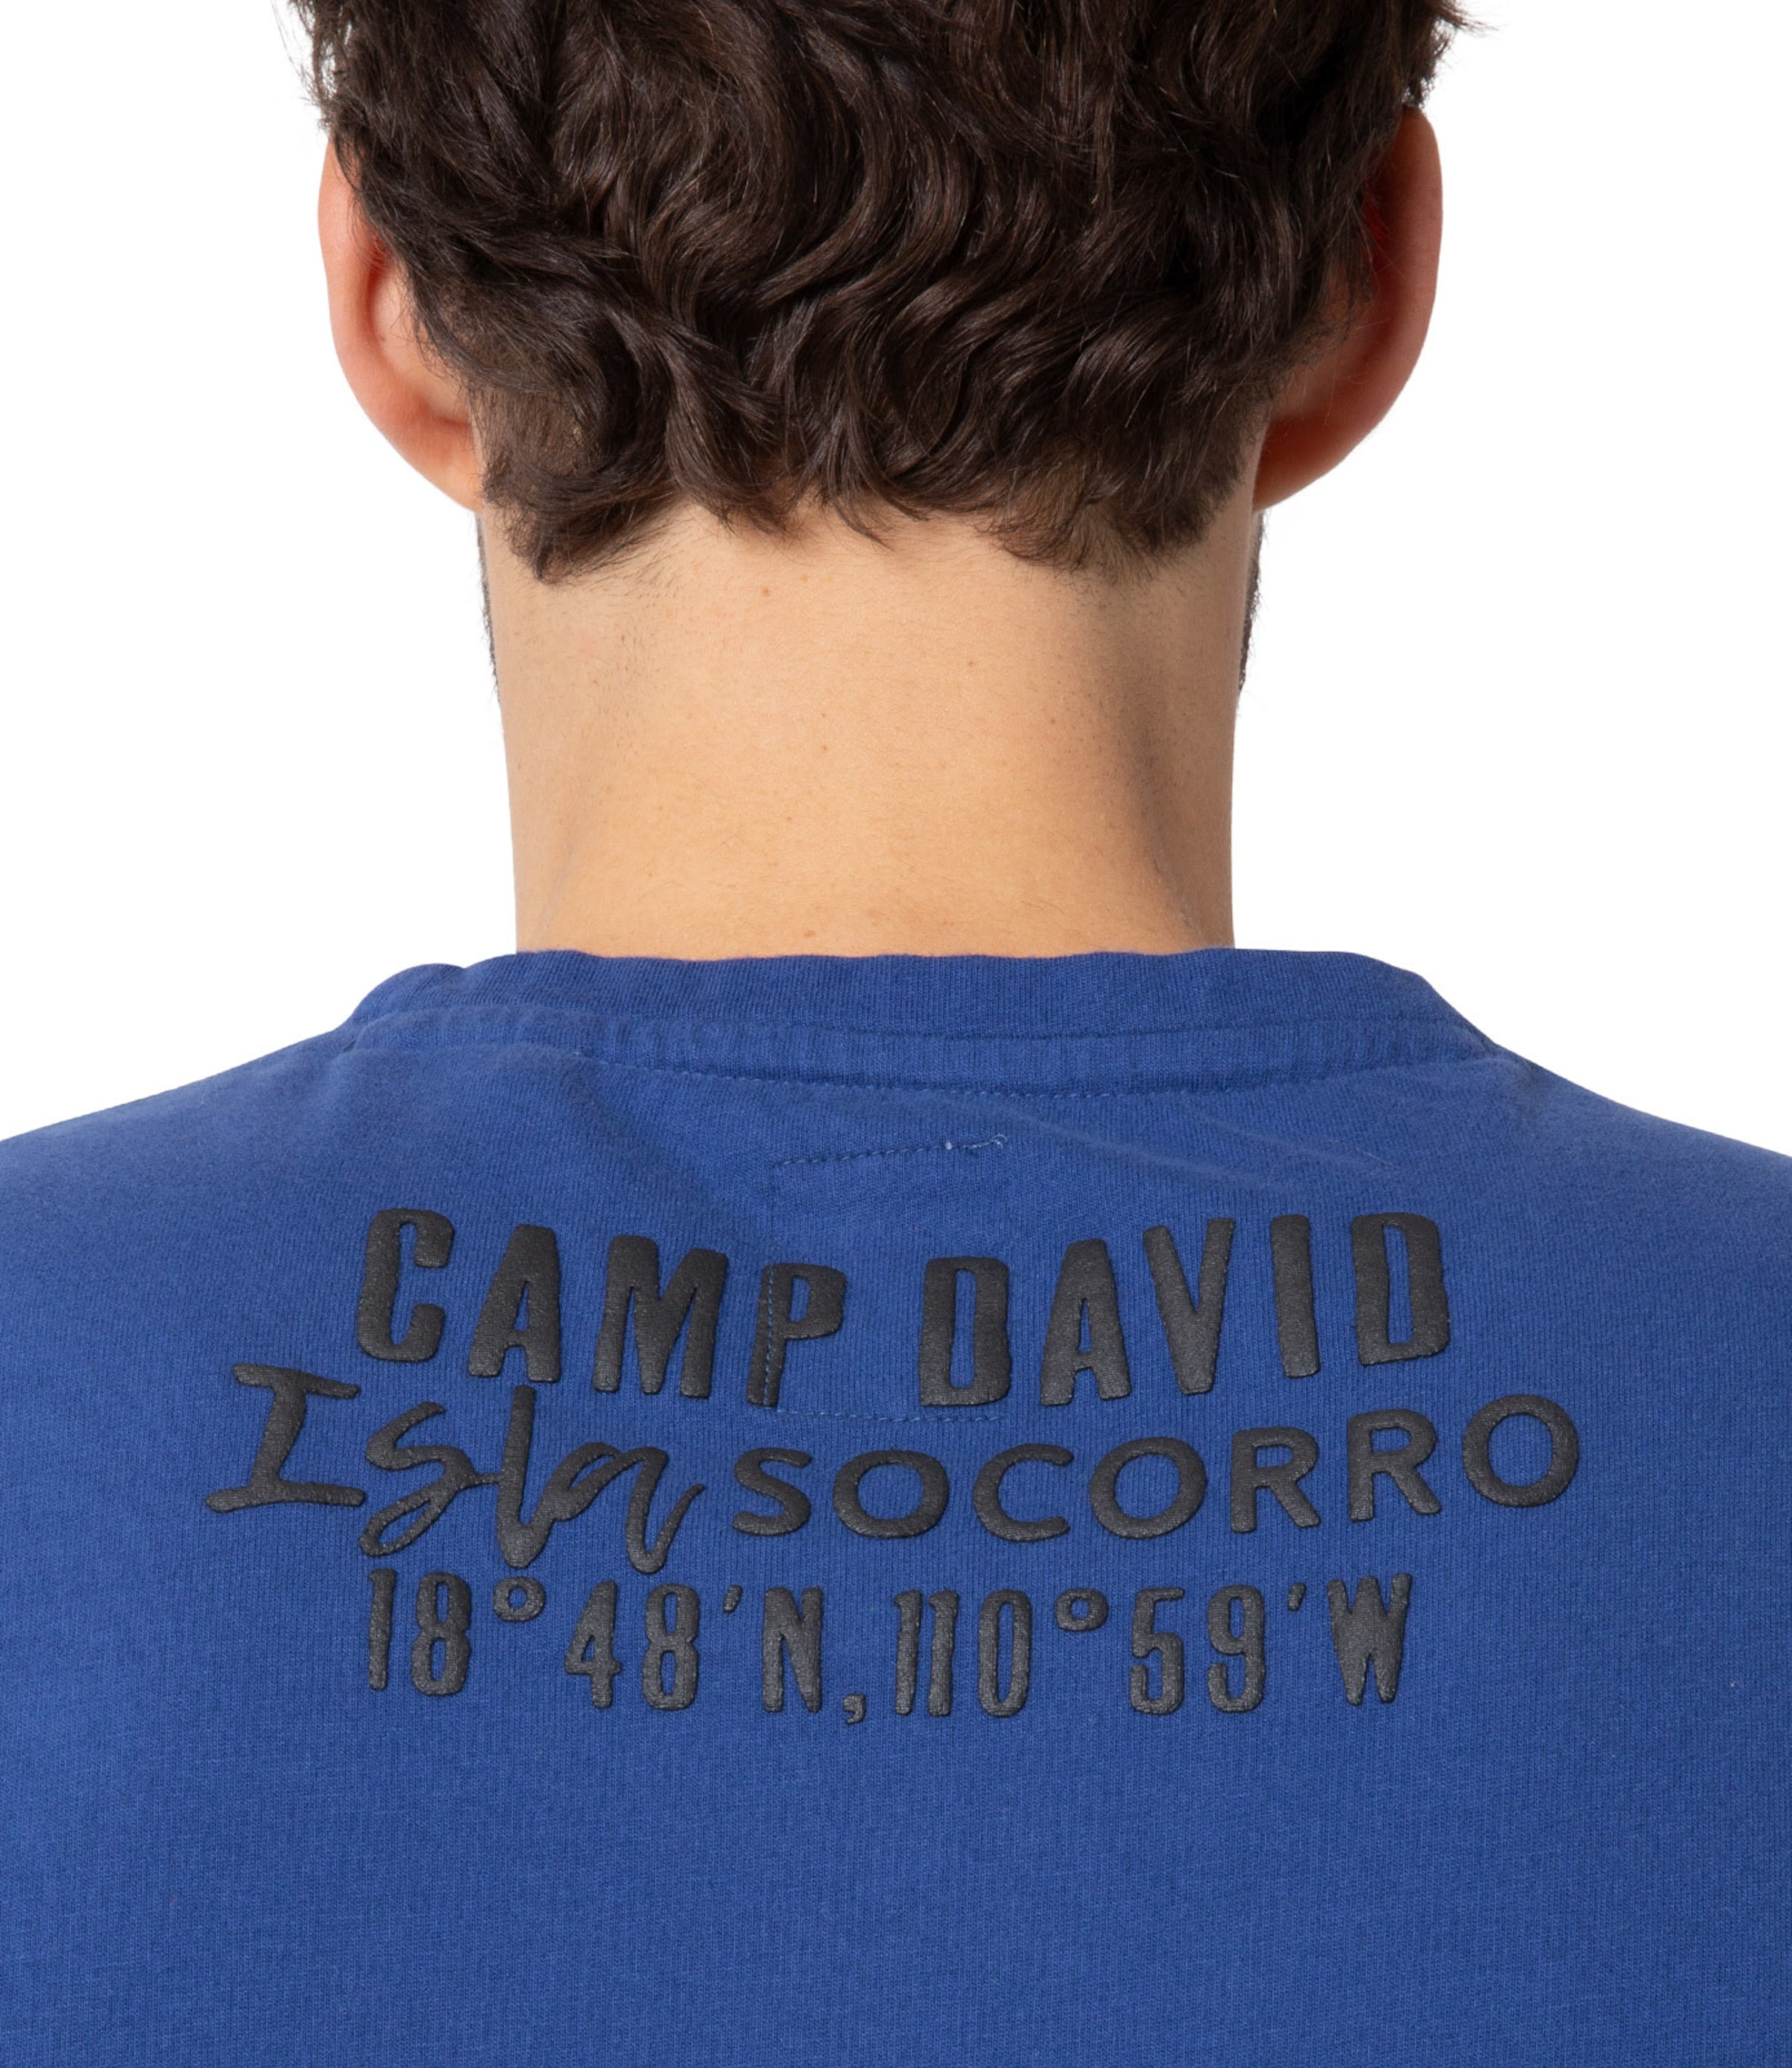 In Camp David BlauMischfarben shirt T O80wPNnkX